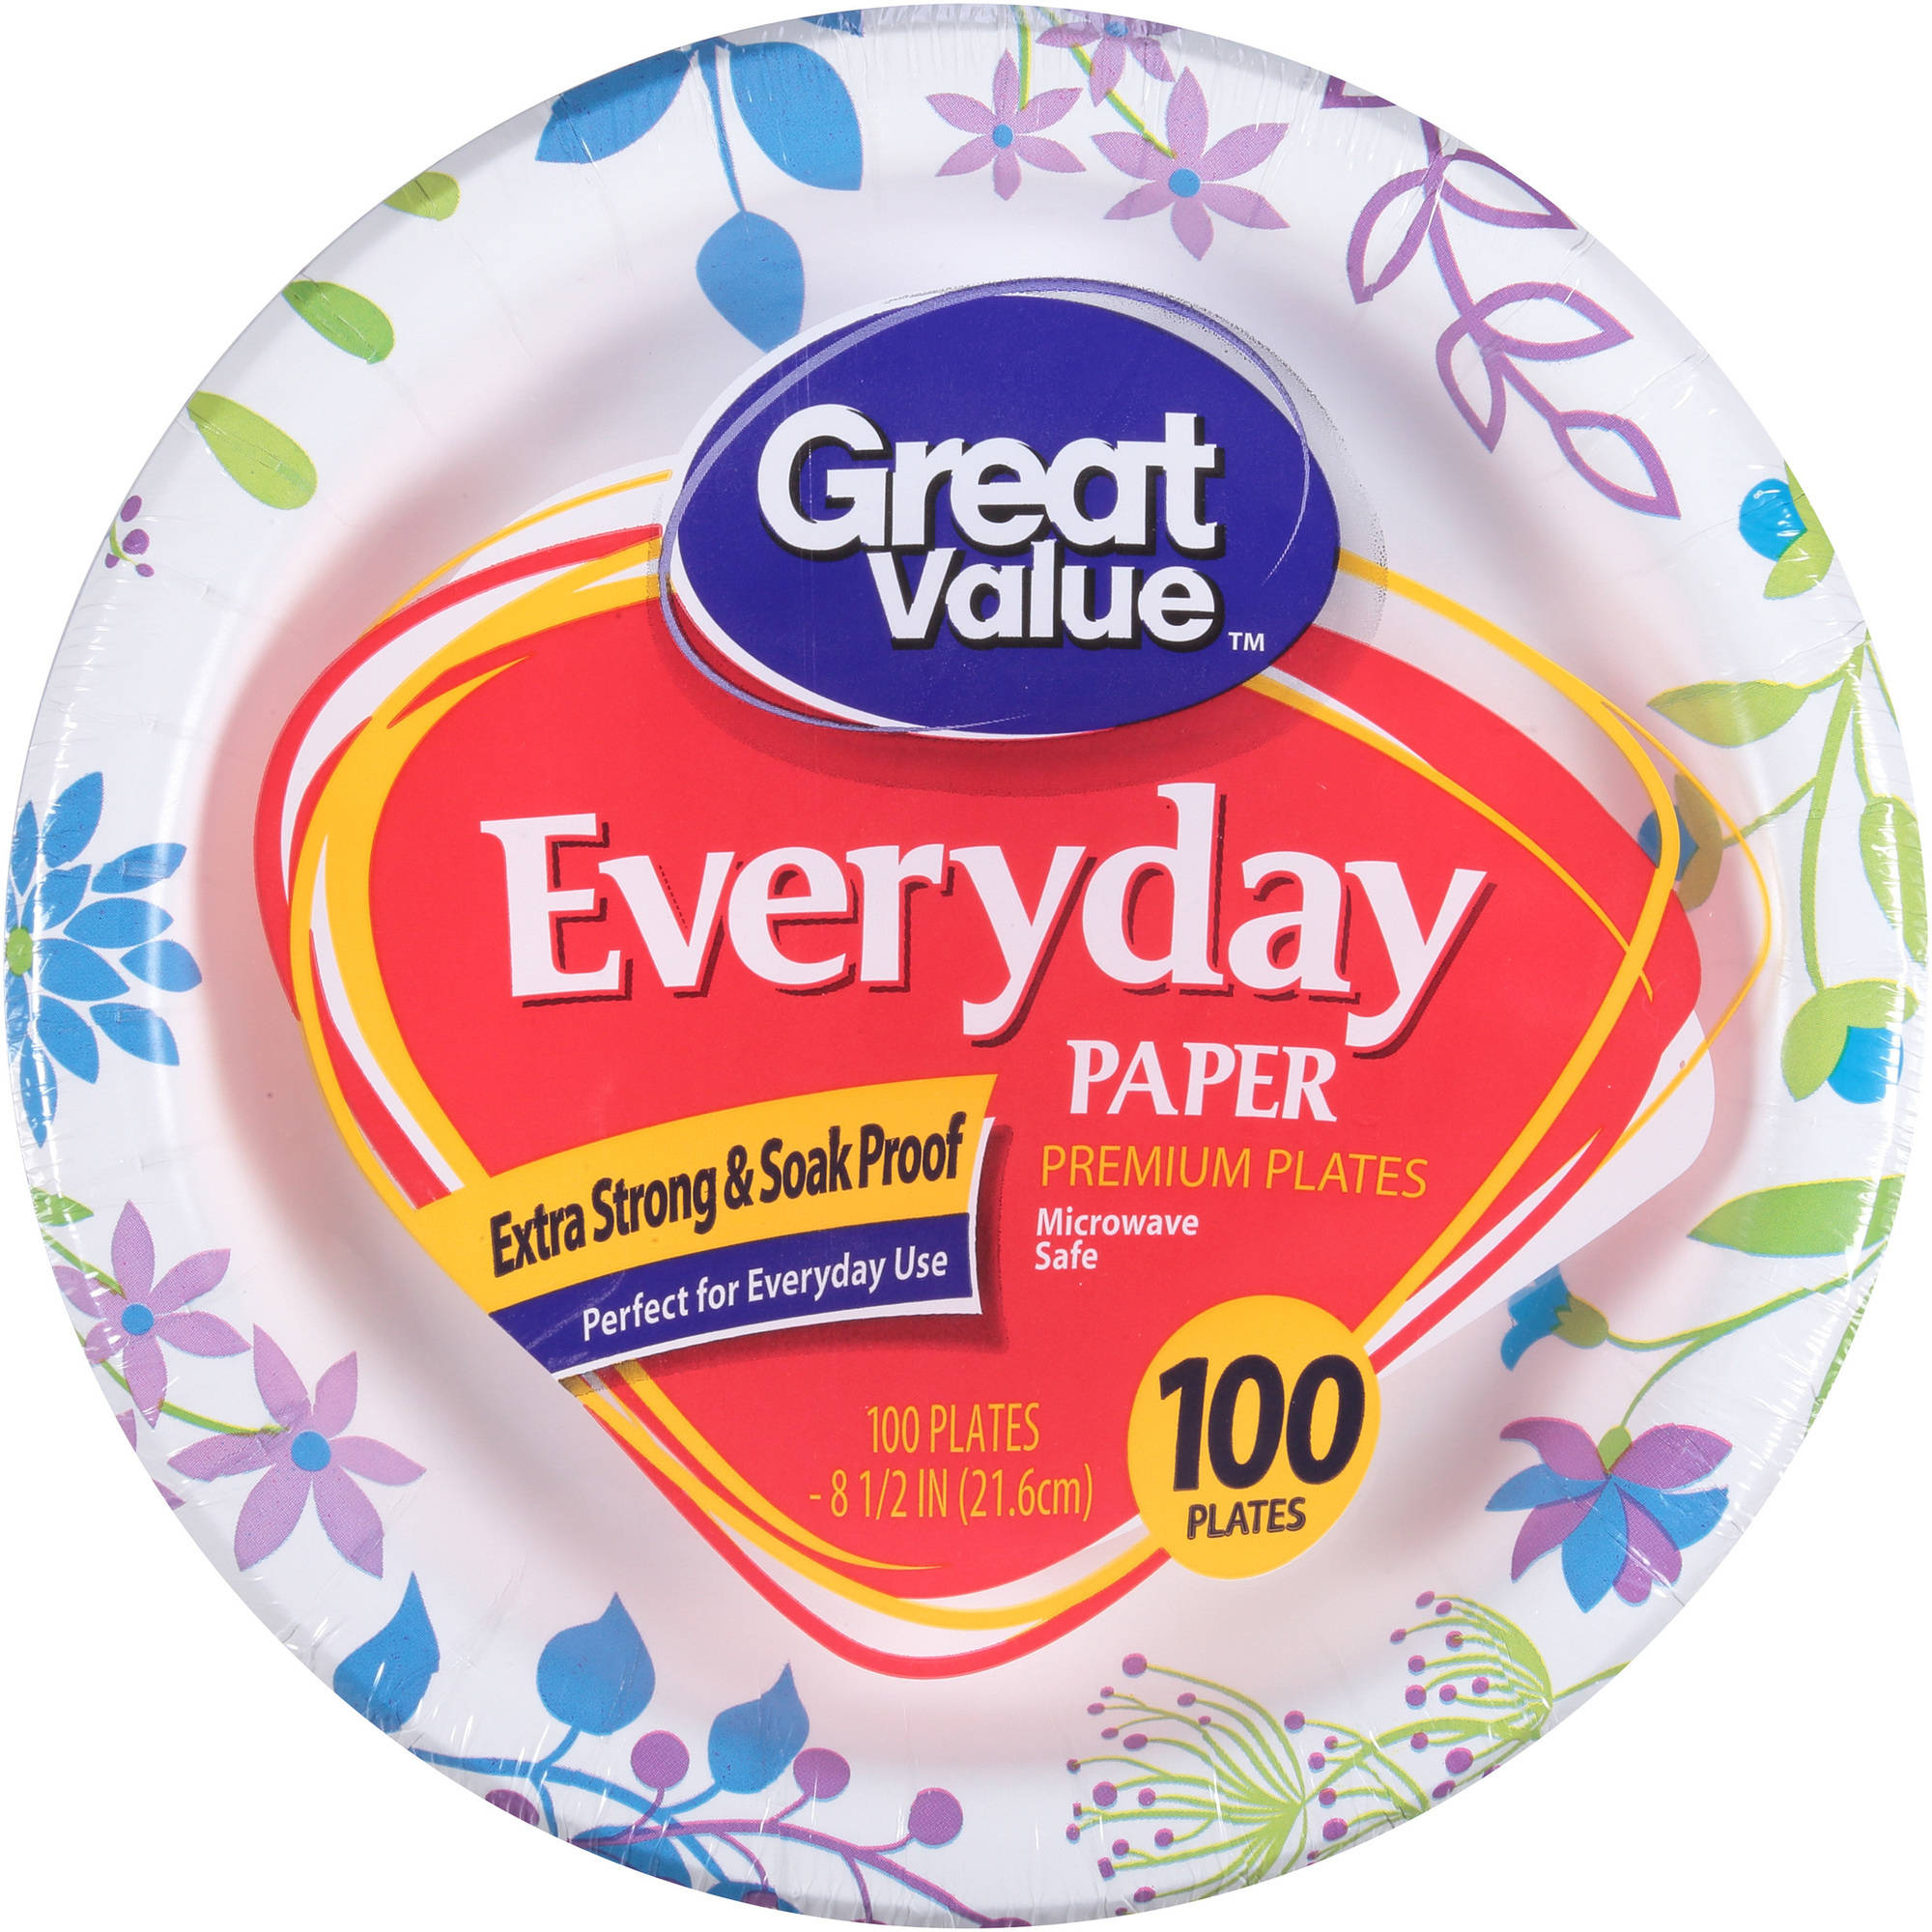 "Great Value 8 5/8"" Heavy Duty Paper Plates, 100 ct"